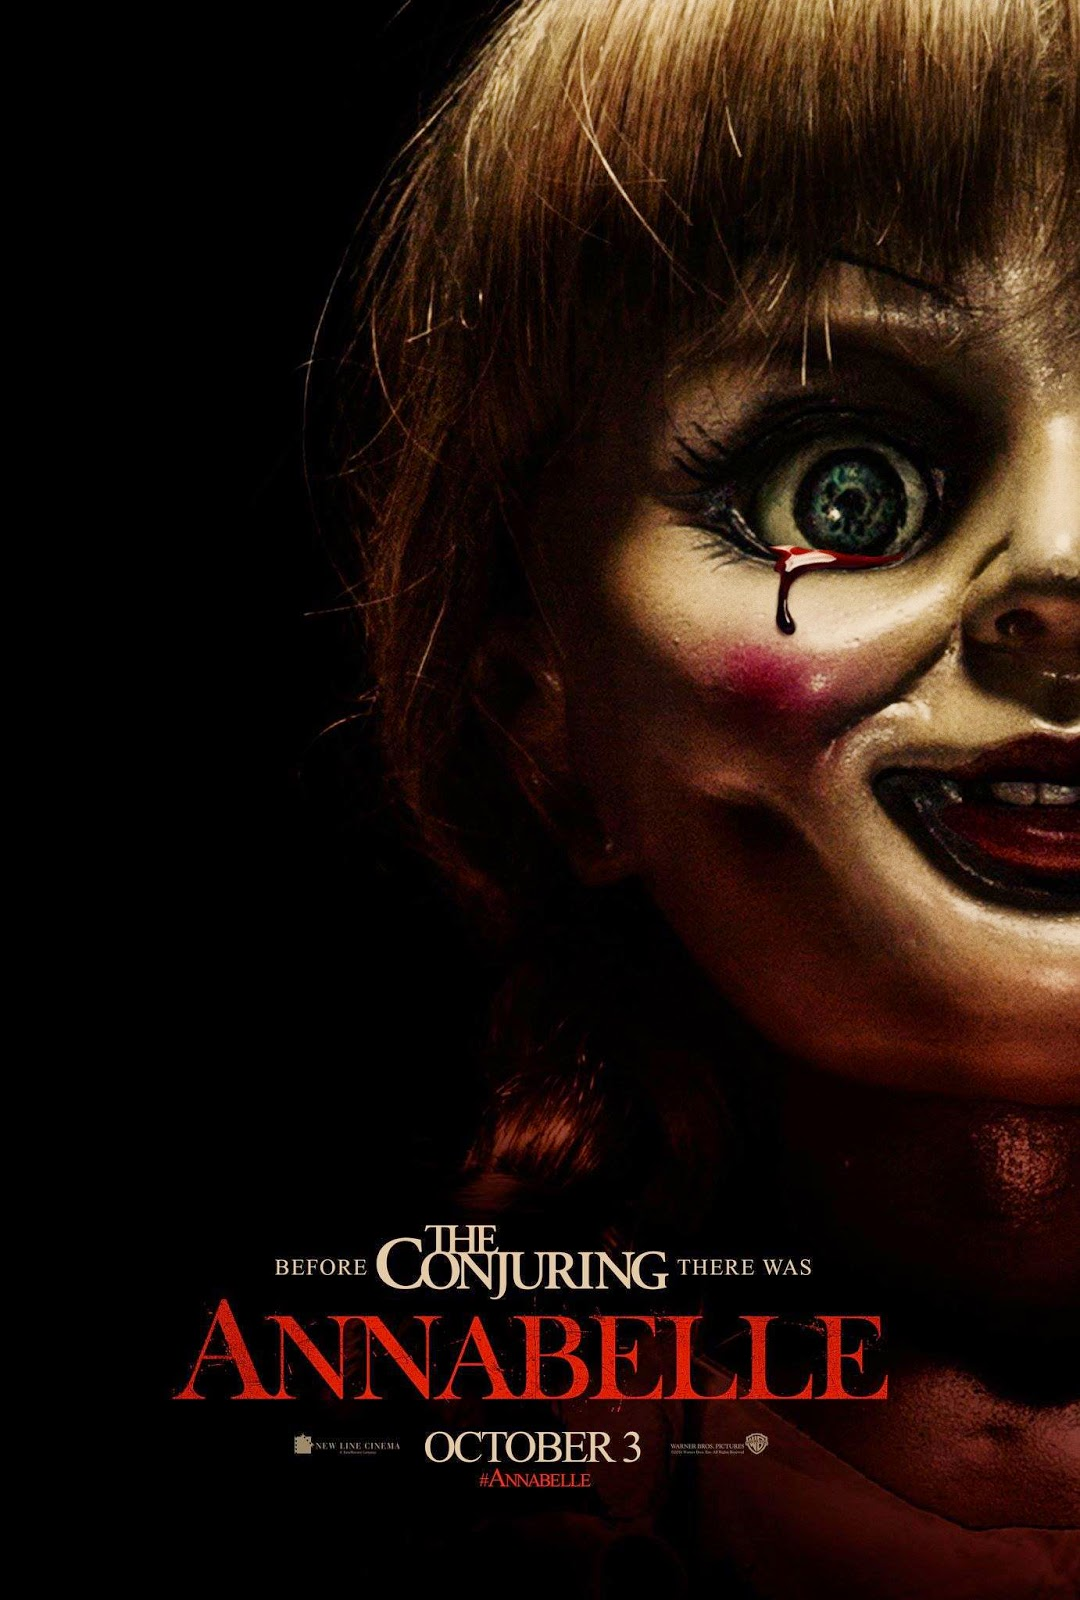 Annabelle 2014 Movie Poster